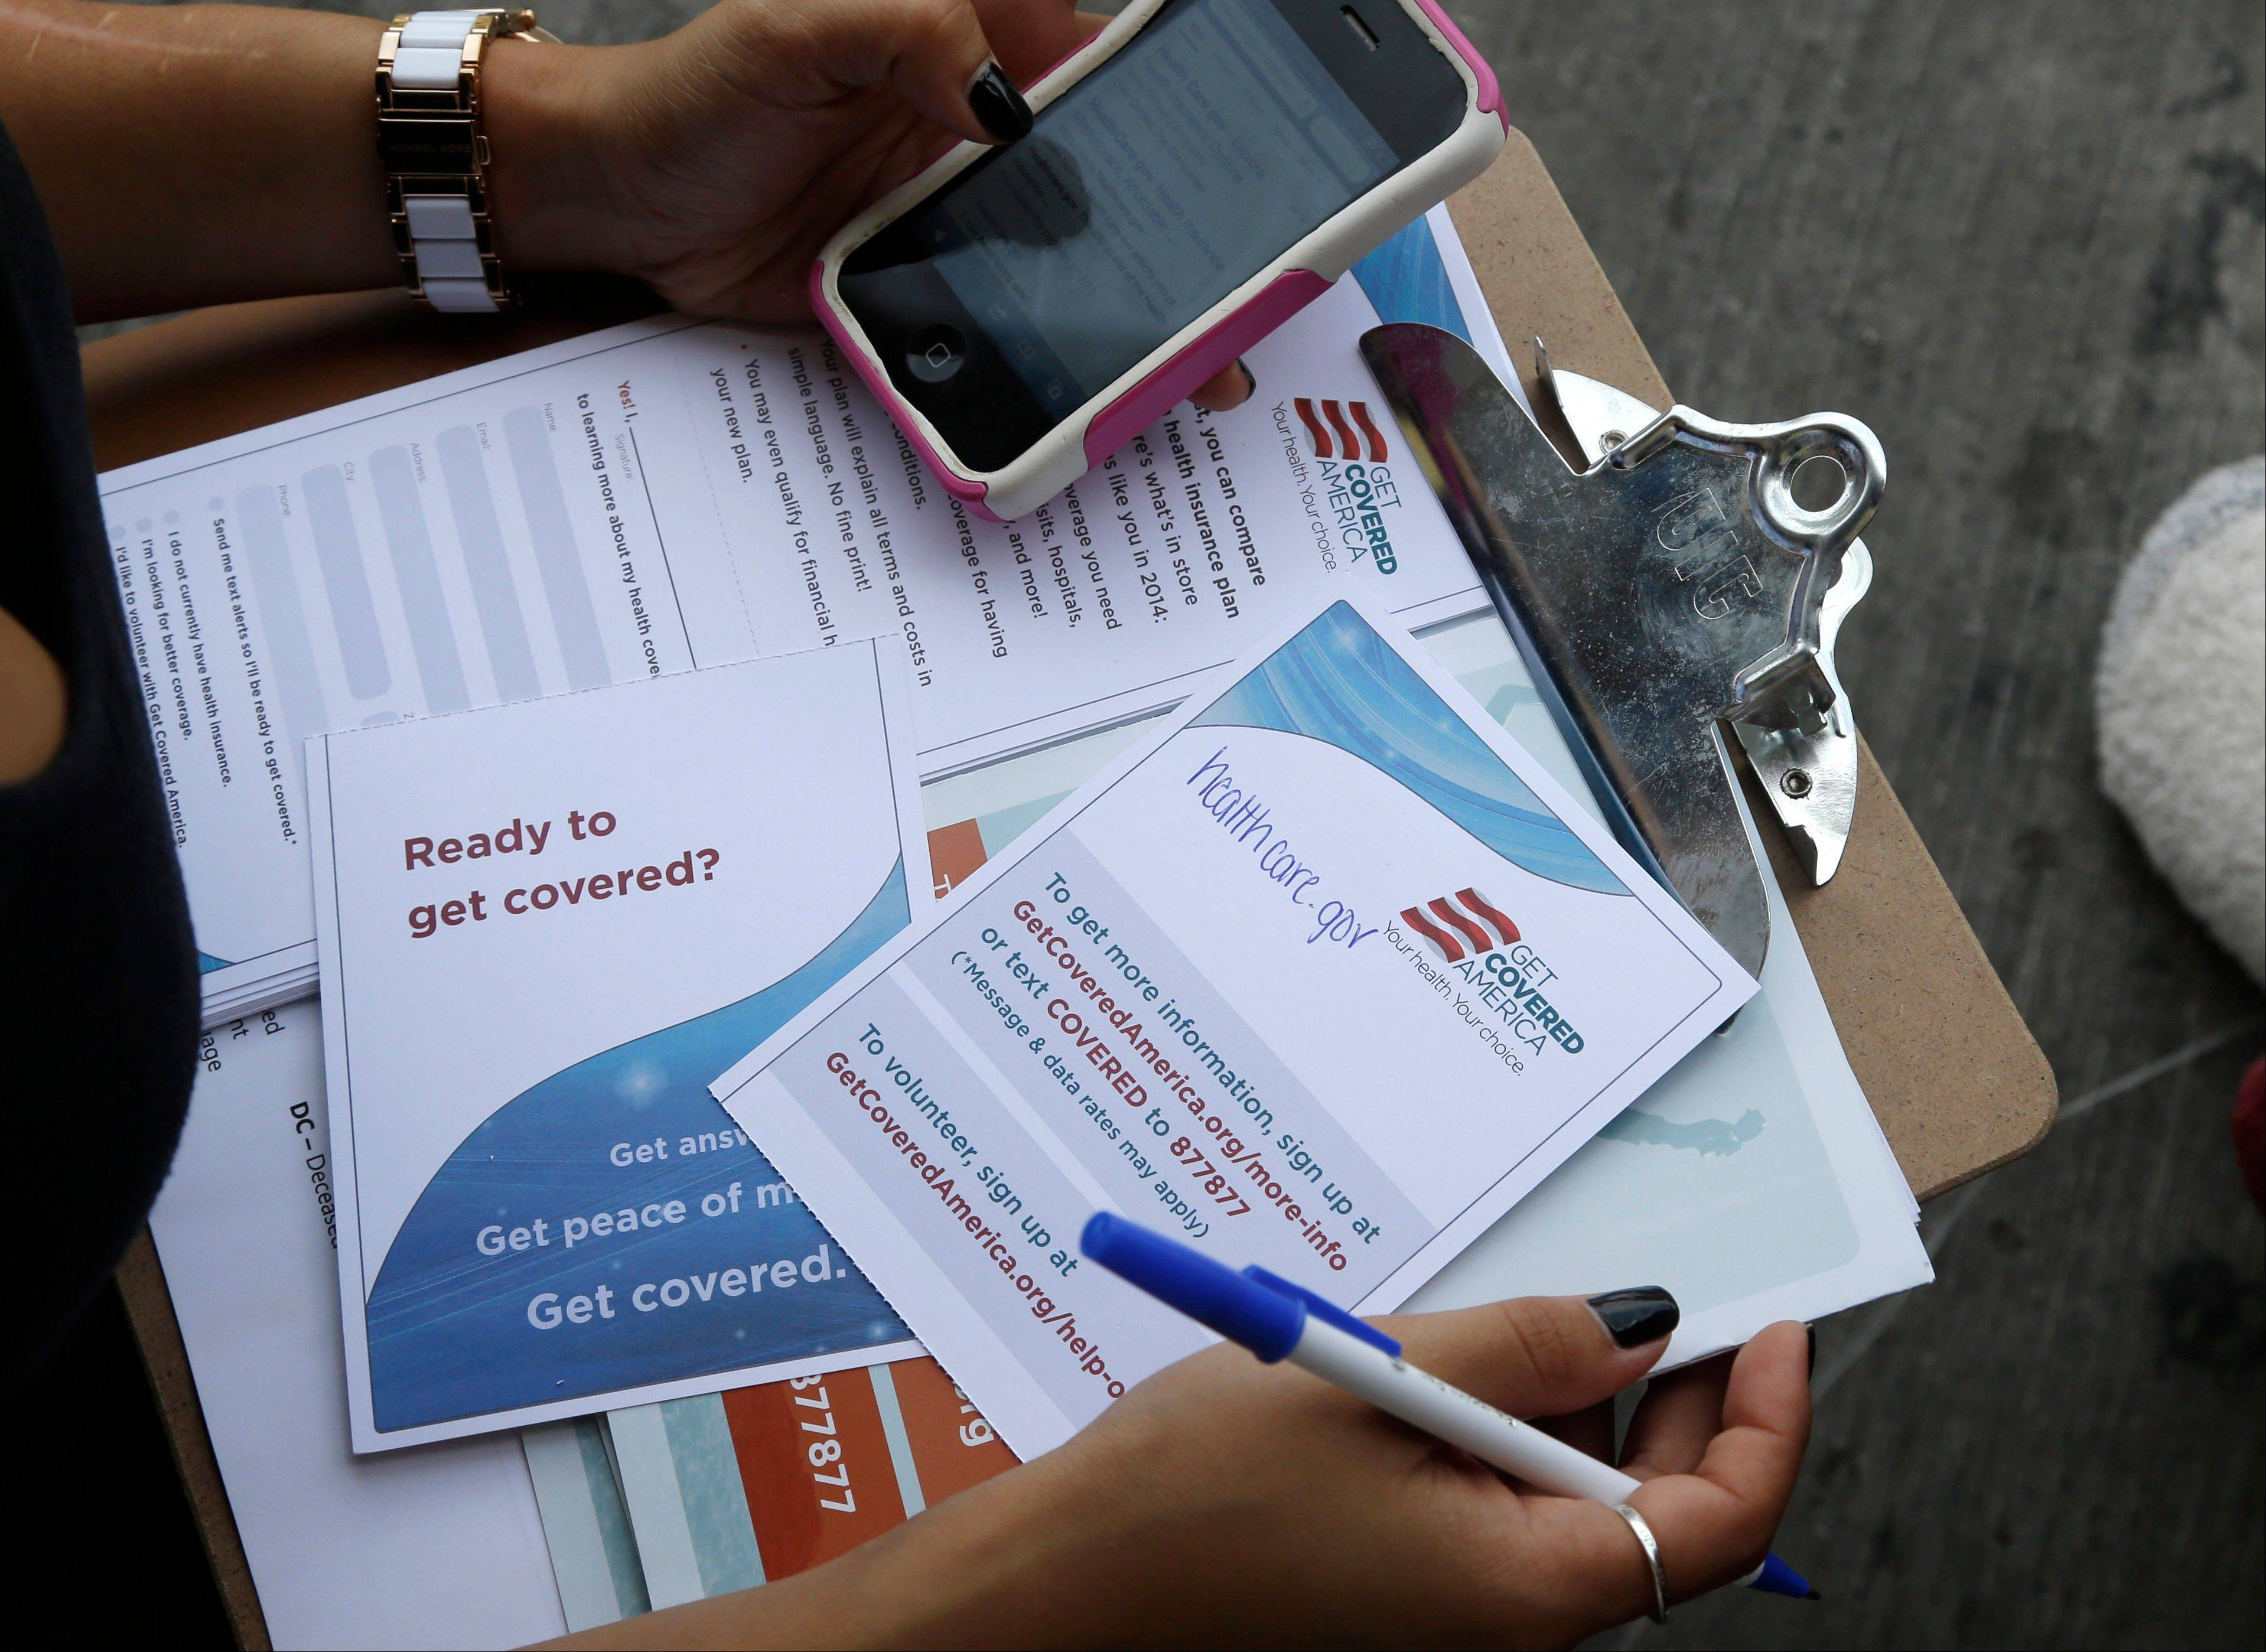 Maygan Rollins, 22, a field organizer with Enroll America, holds a clipboard with pamphlets while canvassing at a bus stop in Miami. Millions of Americans will be able to shop for the first time today on the insurance marketplaces that are at the heart of President Barack Obama's health care reforms.